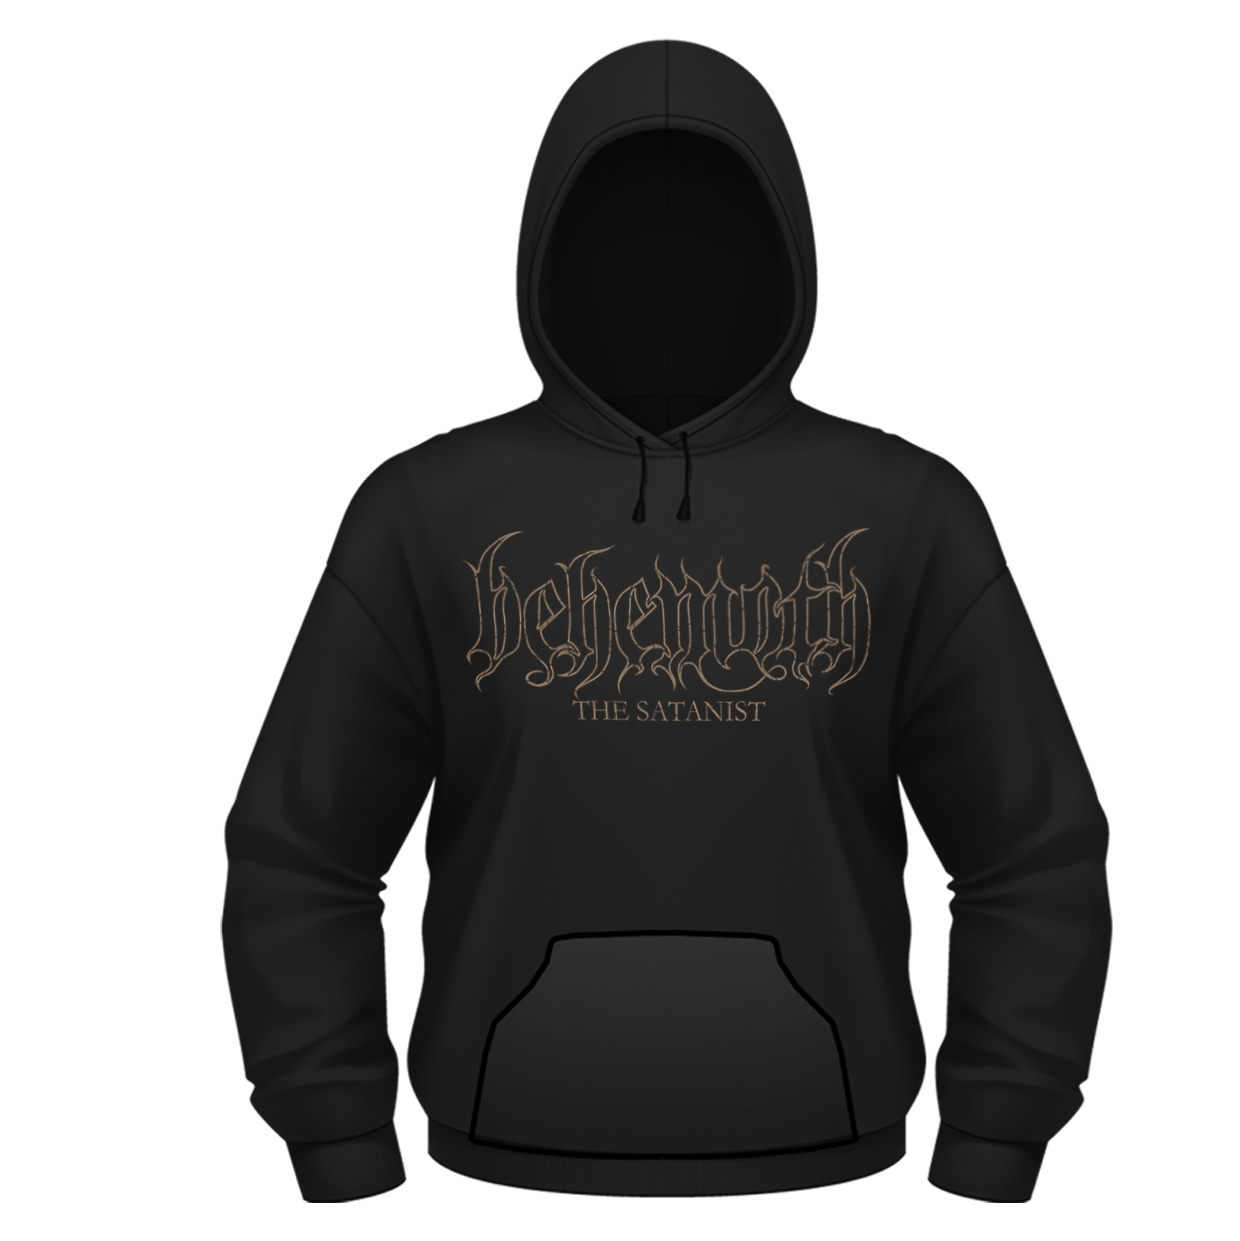 b8b47a84b Behemoth - The Satanist NEW Hooded Sweatshirt